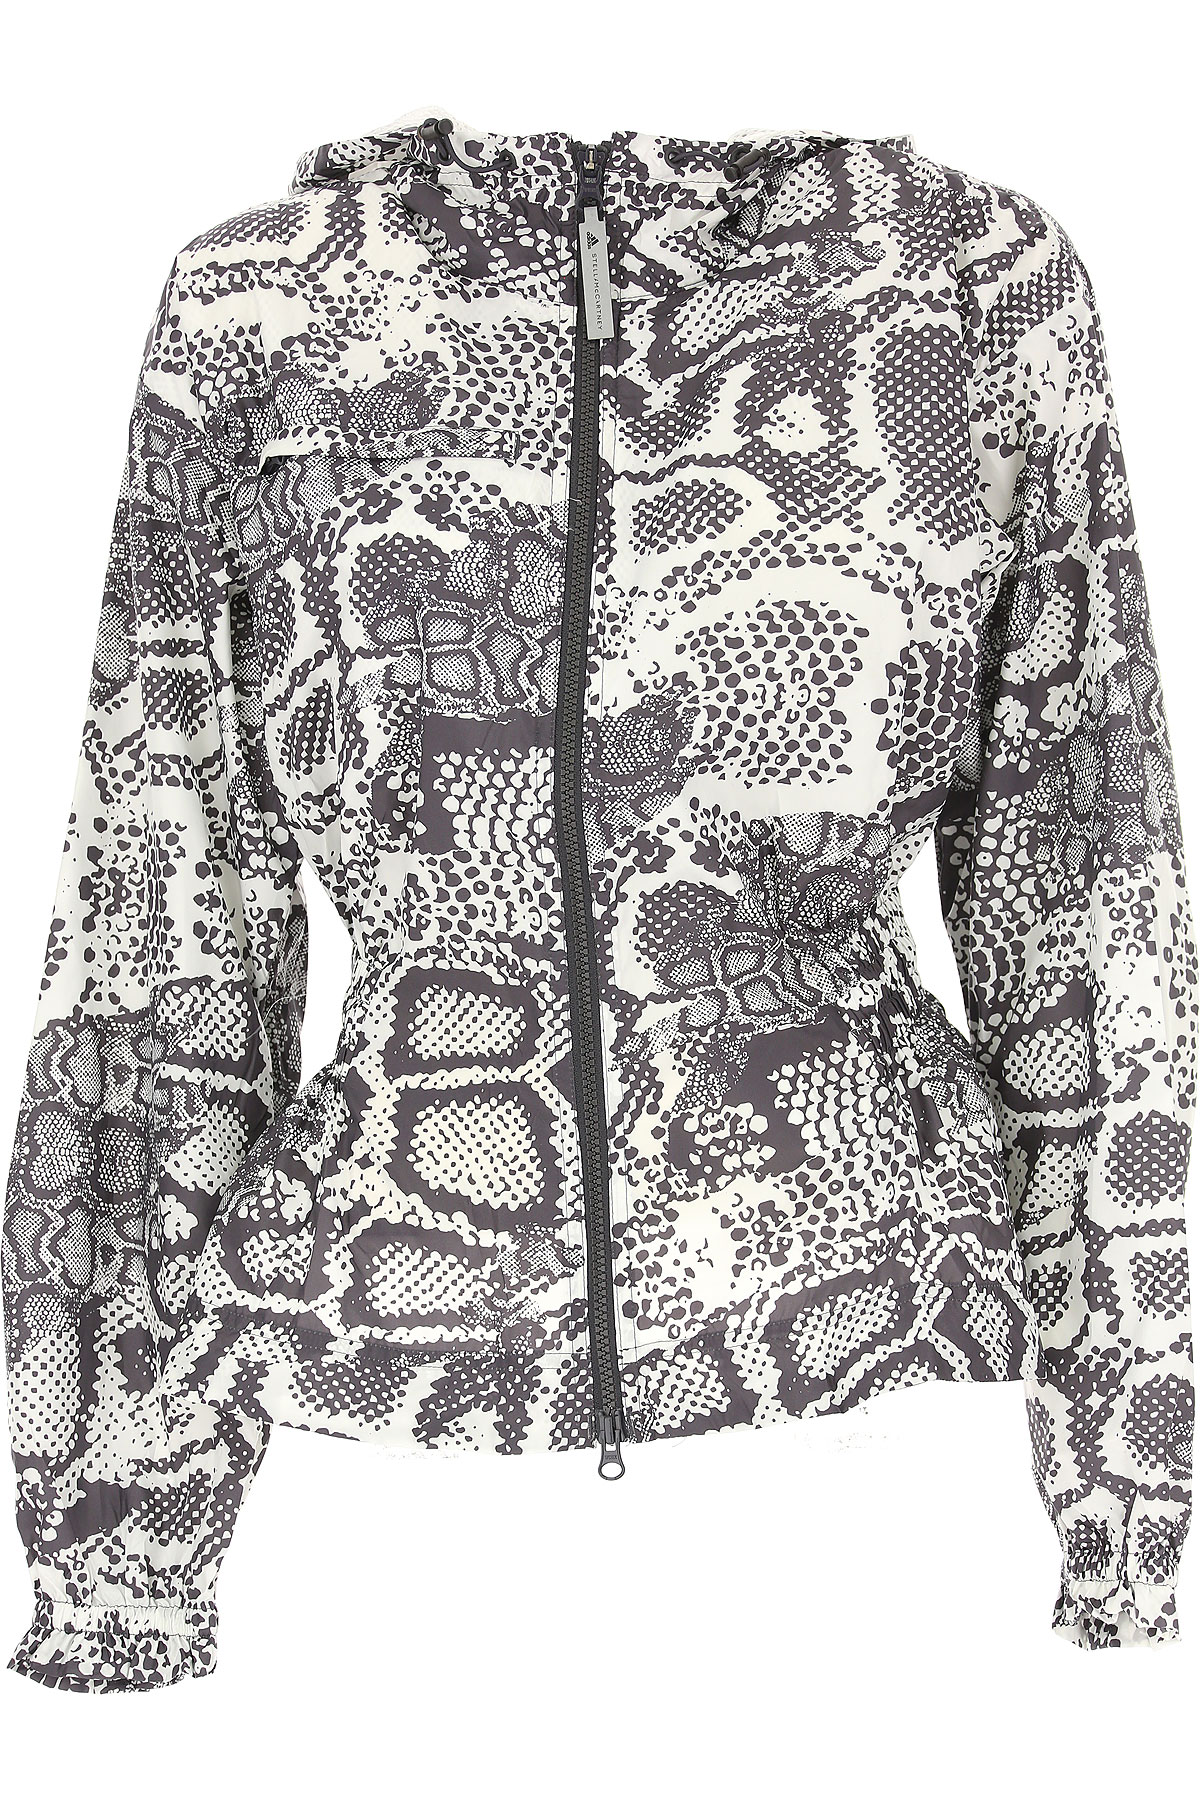 Image of Adidas Jacket for Women On Sale in Outlet, White, Polyestere Recycled, 2017, 2 4 6